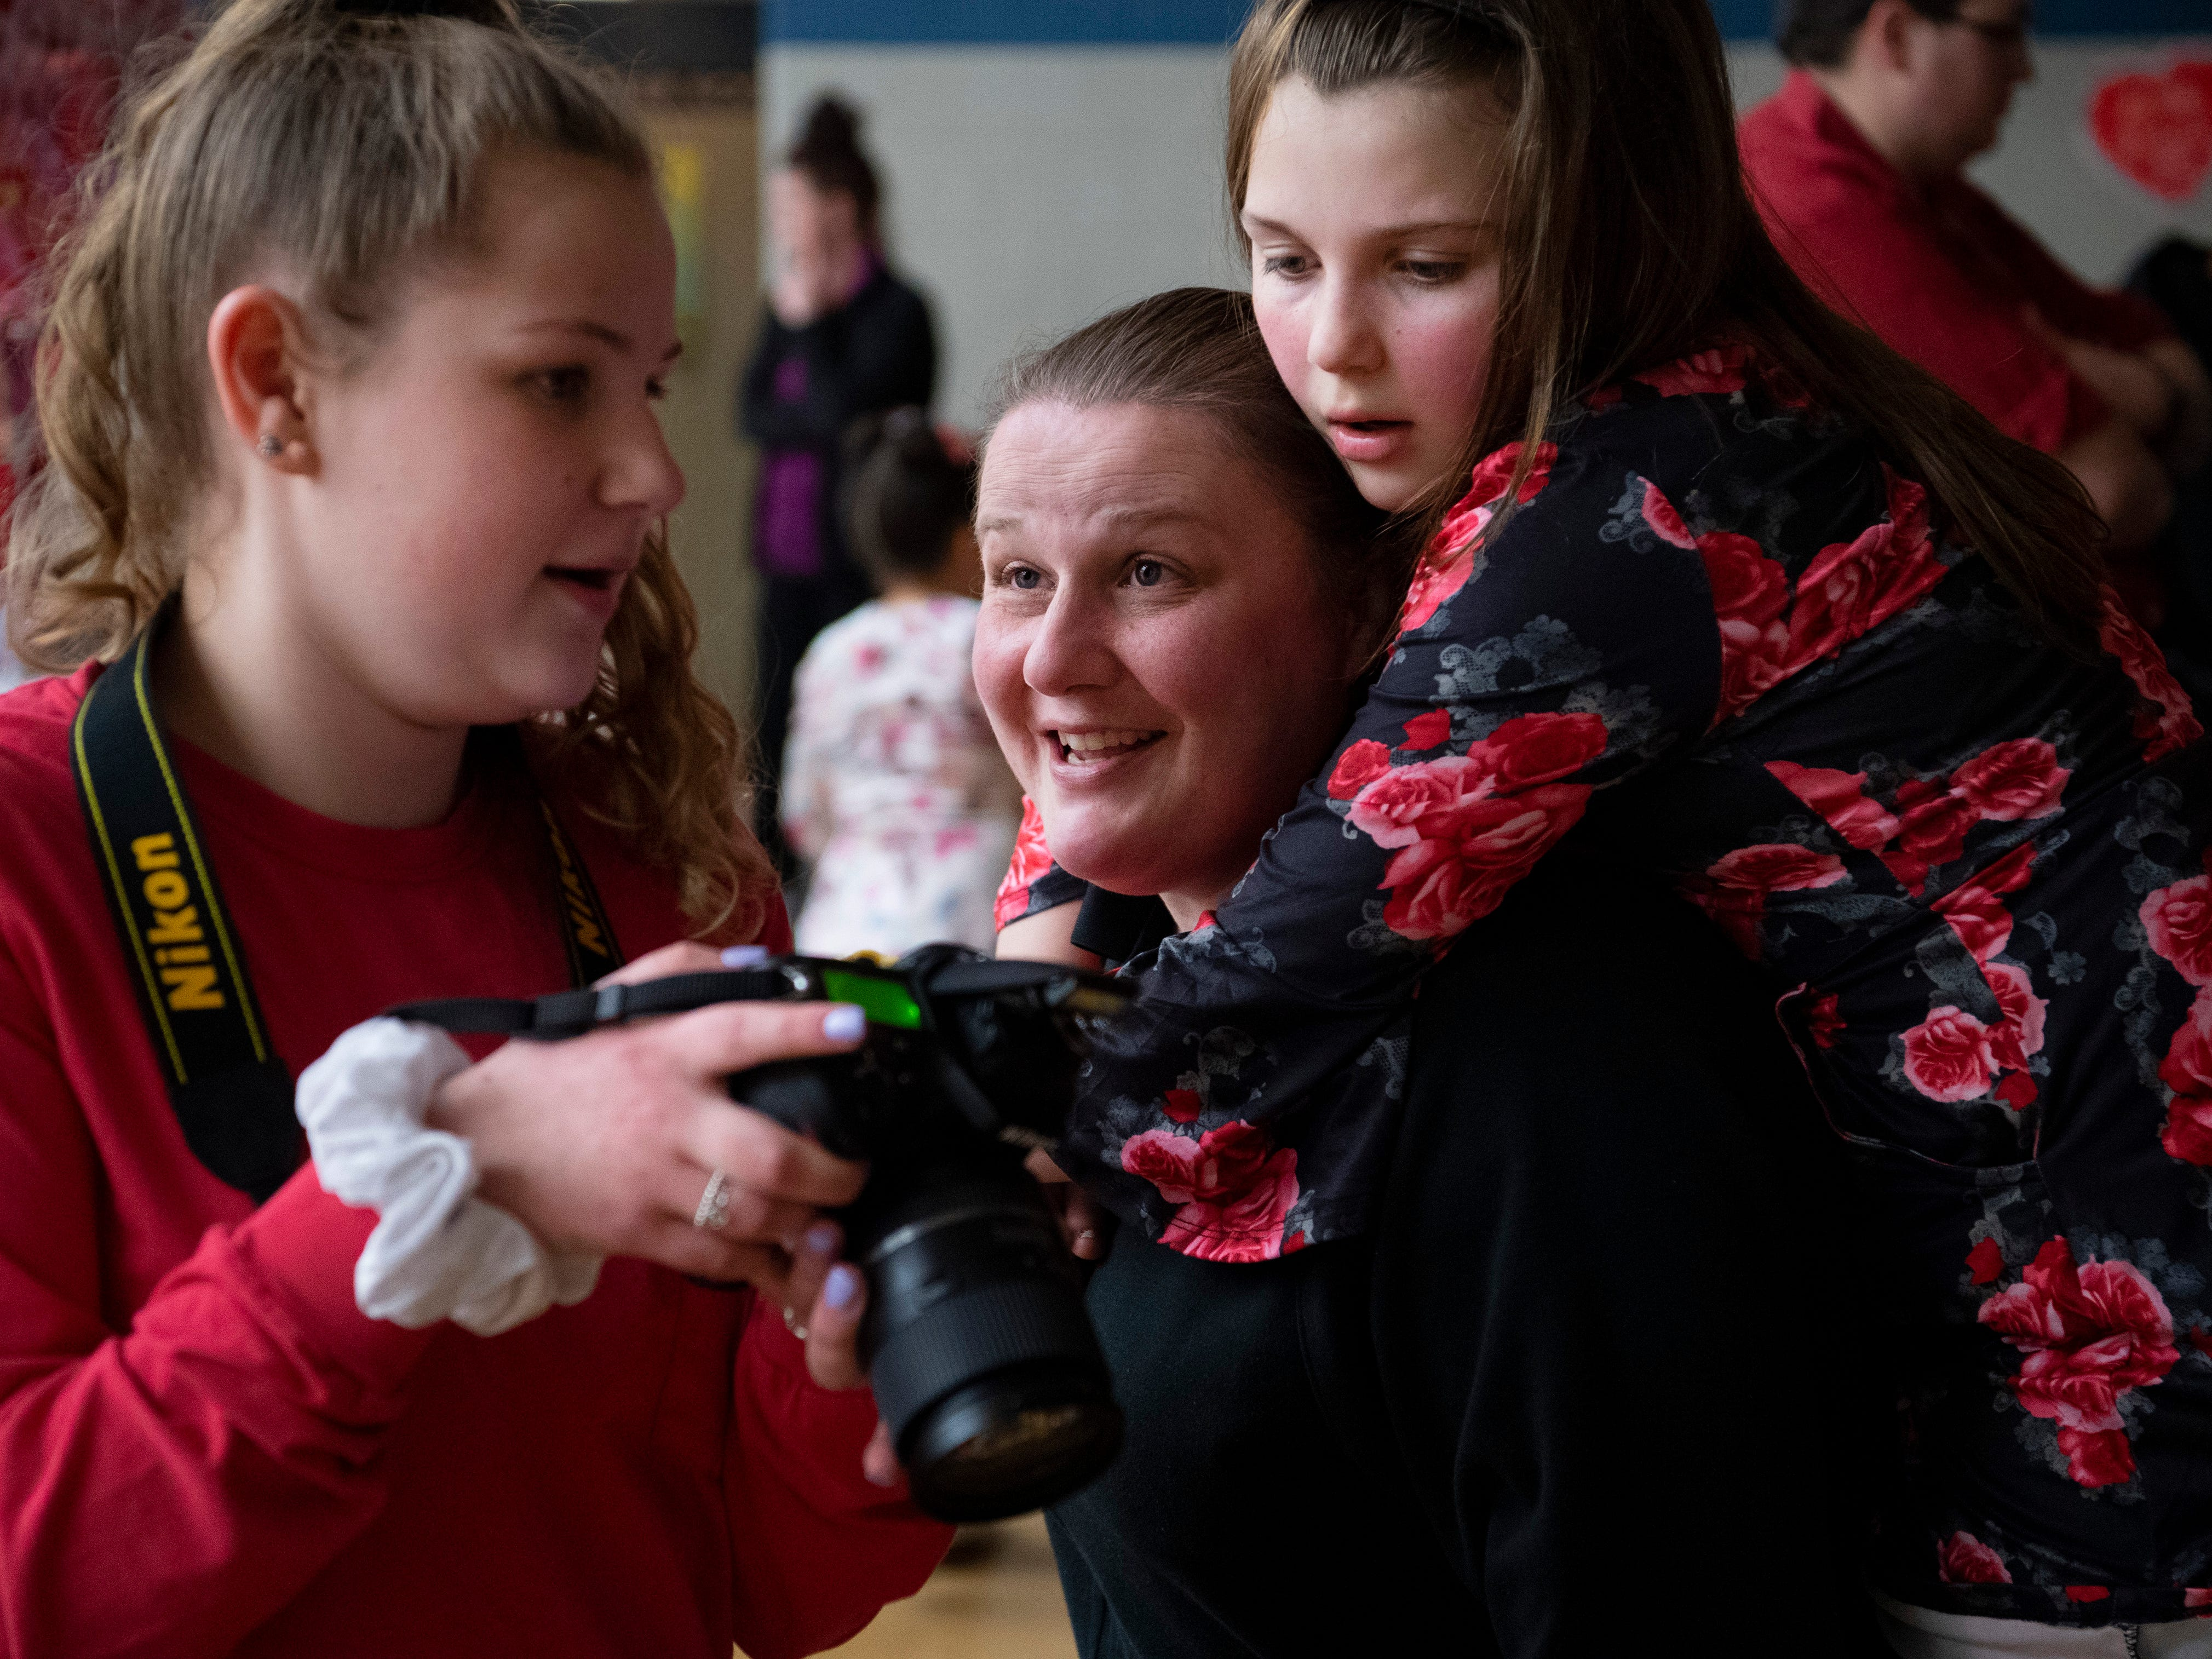 Lilly Osborne, 15, left, shares a picture she made of her aunt, Lori Briggeler, center, and sister, Caze Elementary School student Kayla Osborne, 10, at the Sweetheart Dance Tuesday night. Lilly was once a student at Caze and was volunteering her photographic services to help make the night as special for them as it was for her.